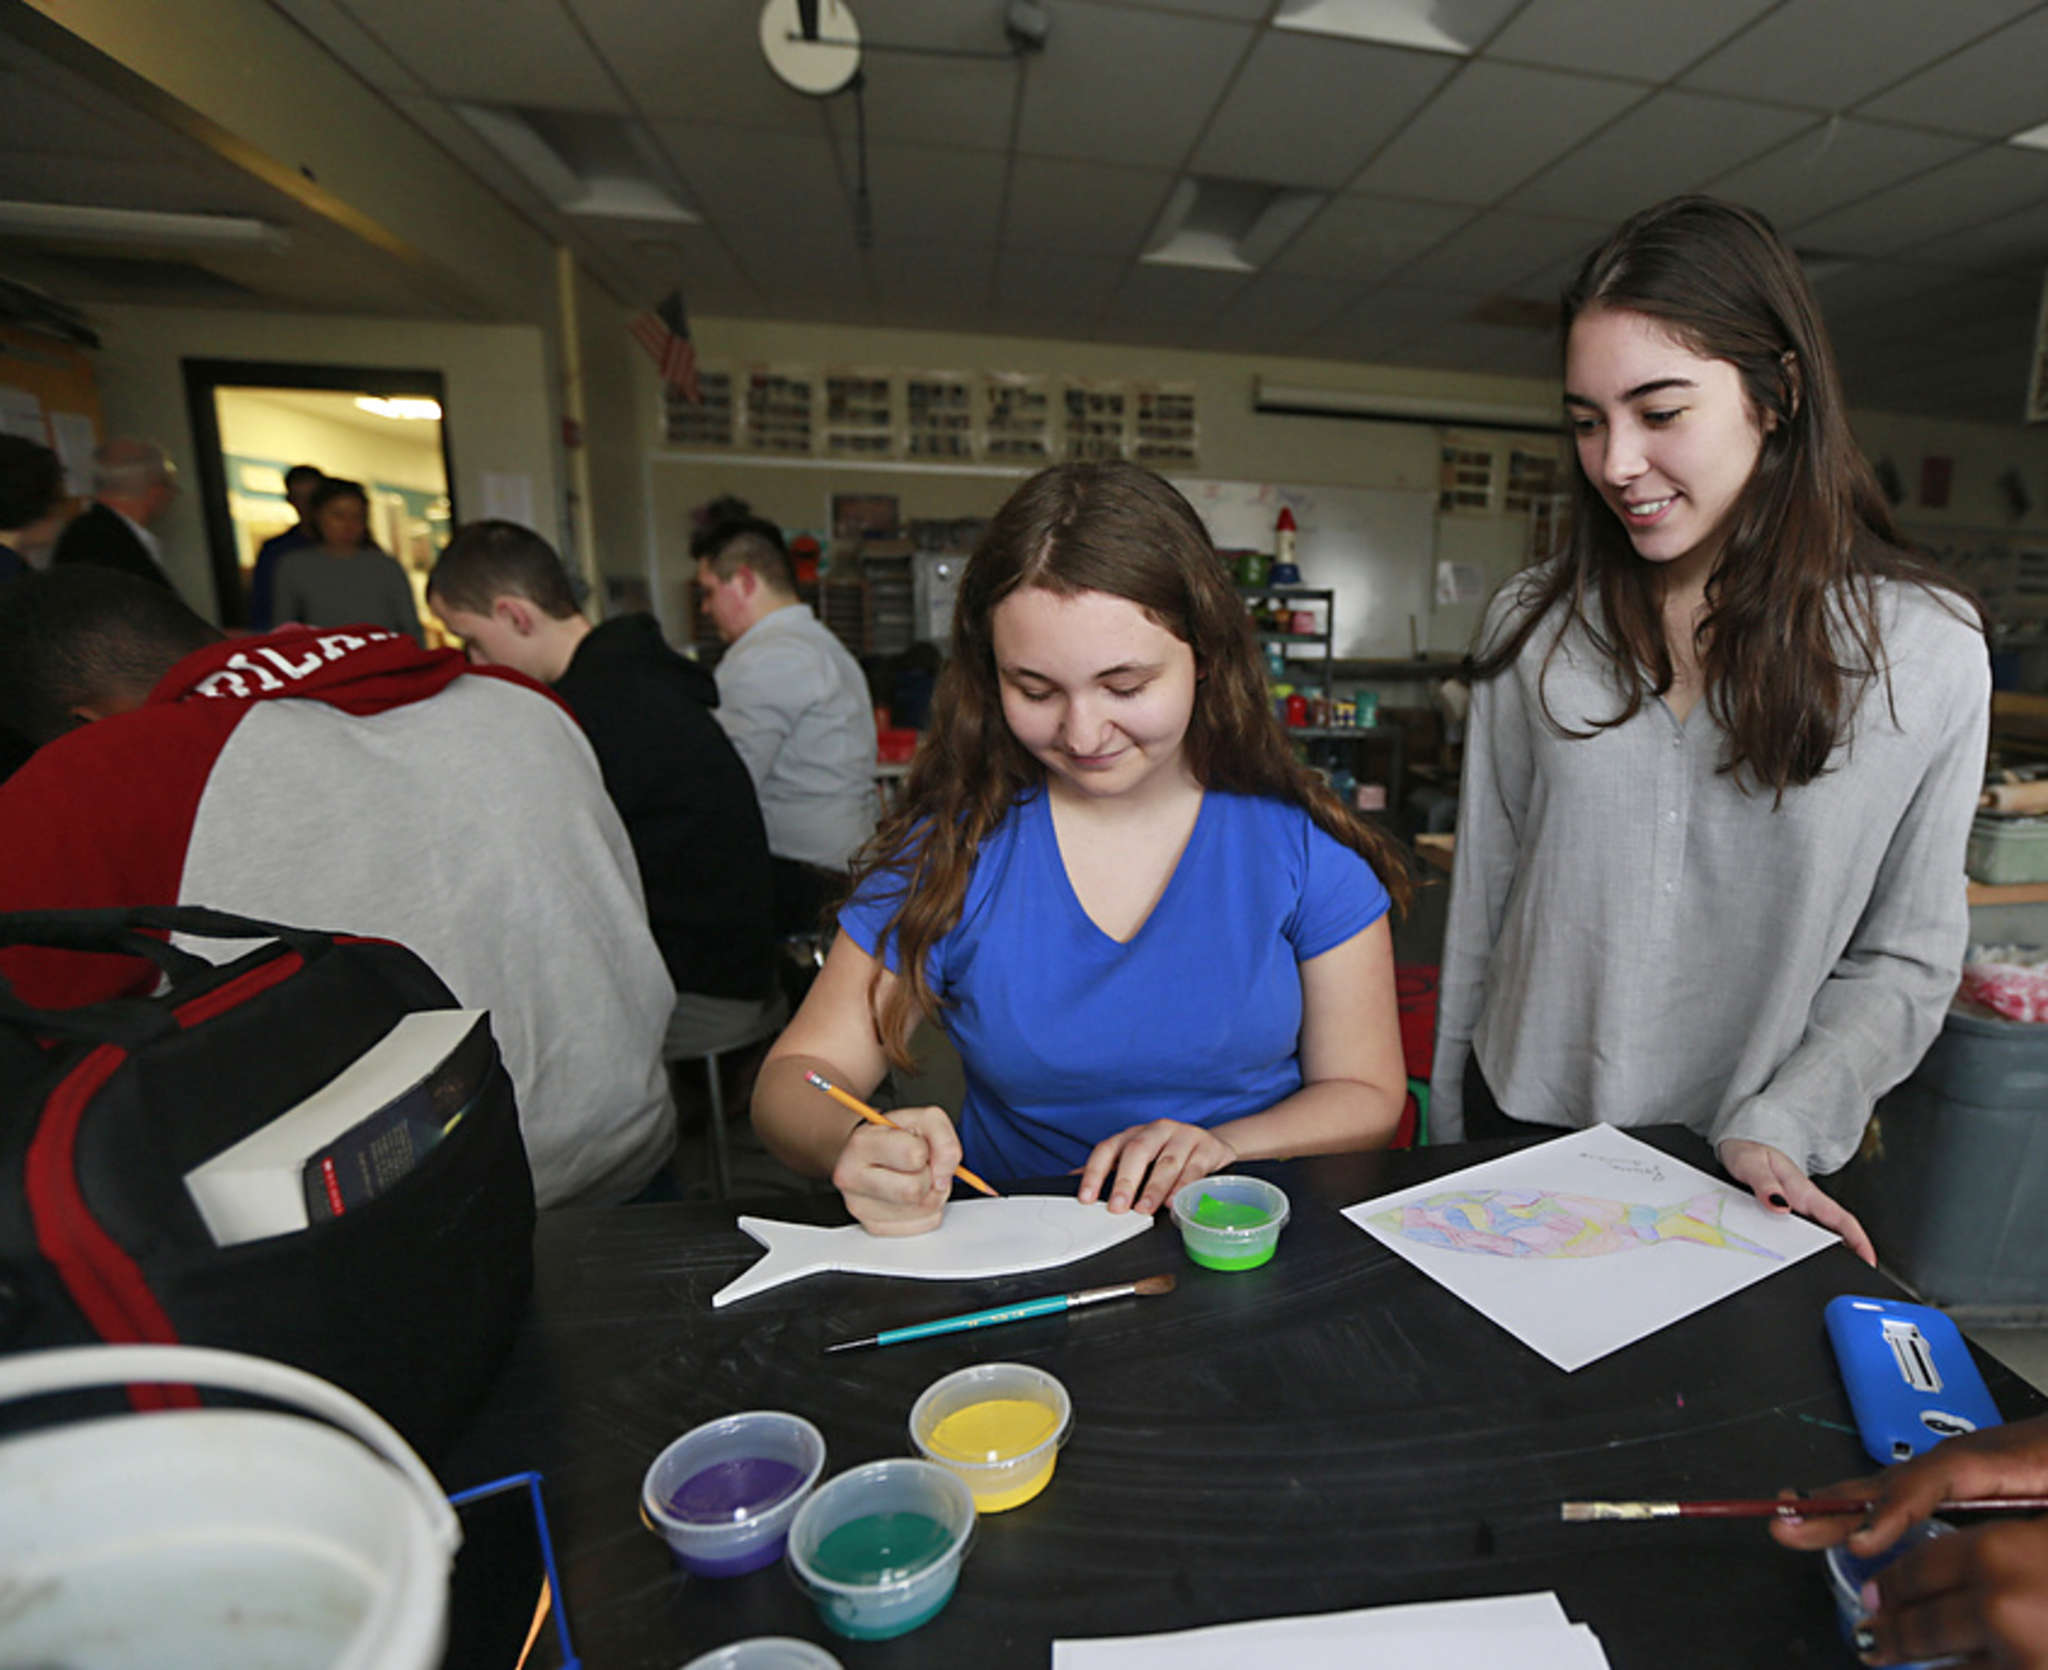 Artist Winter Willoughby- Spera watches Brianna Siciliano, a freshman at Gloucester City High, at work.